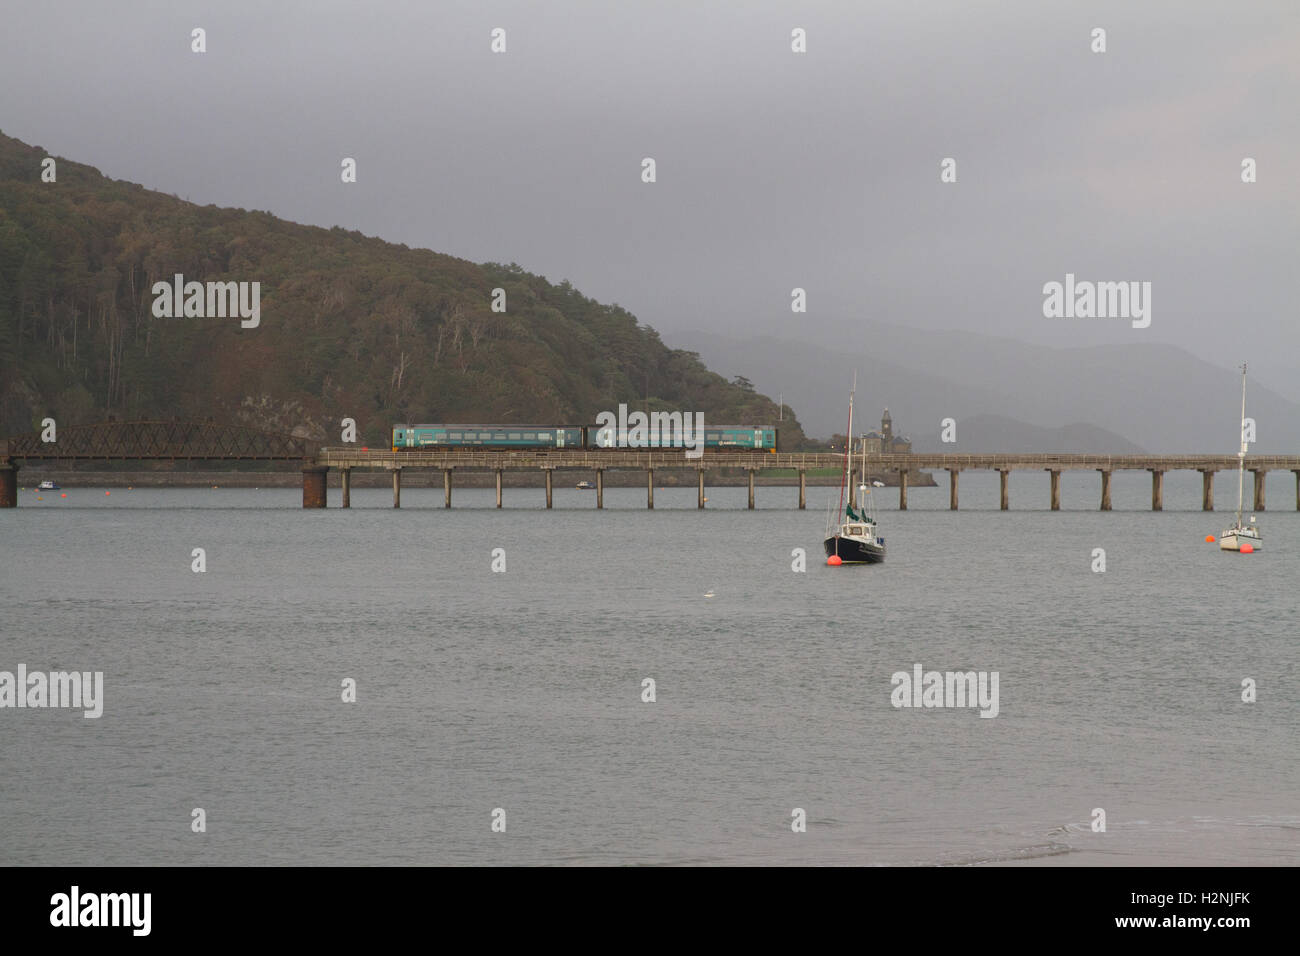 Arriva Trains Wales ATW service train crosses Barmouth Bridge, the Network Rail infrastructure wooden viaduct over Stock Photo